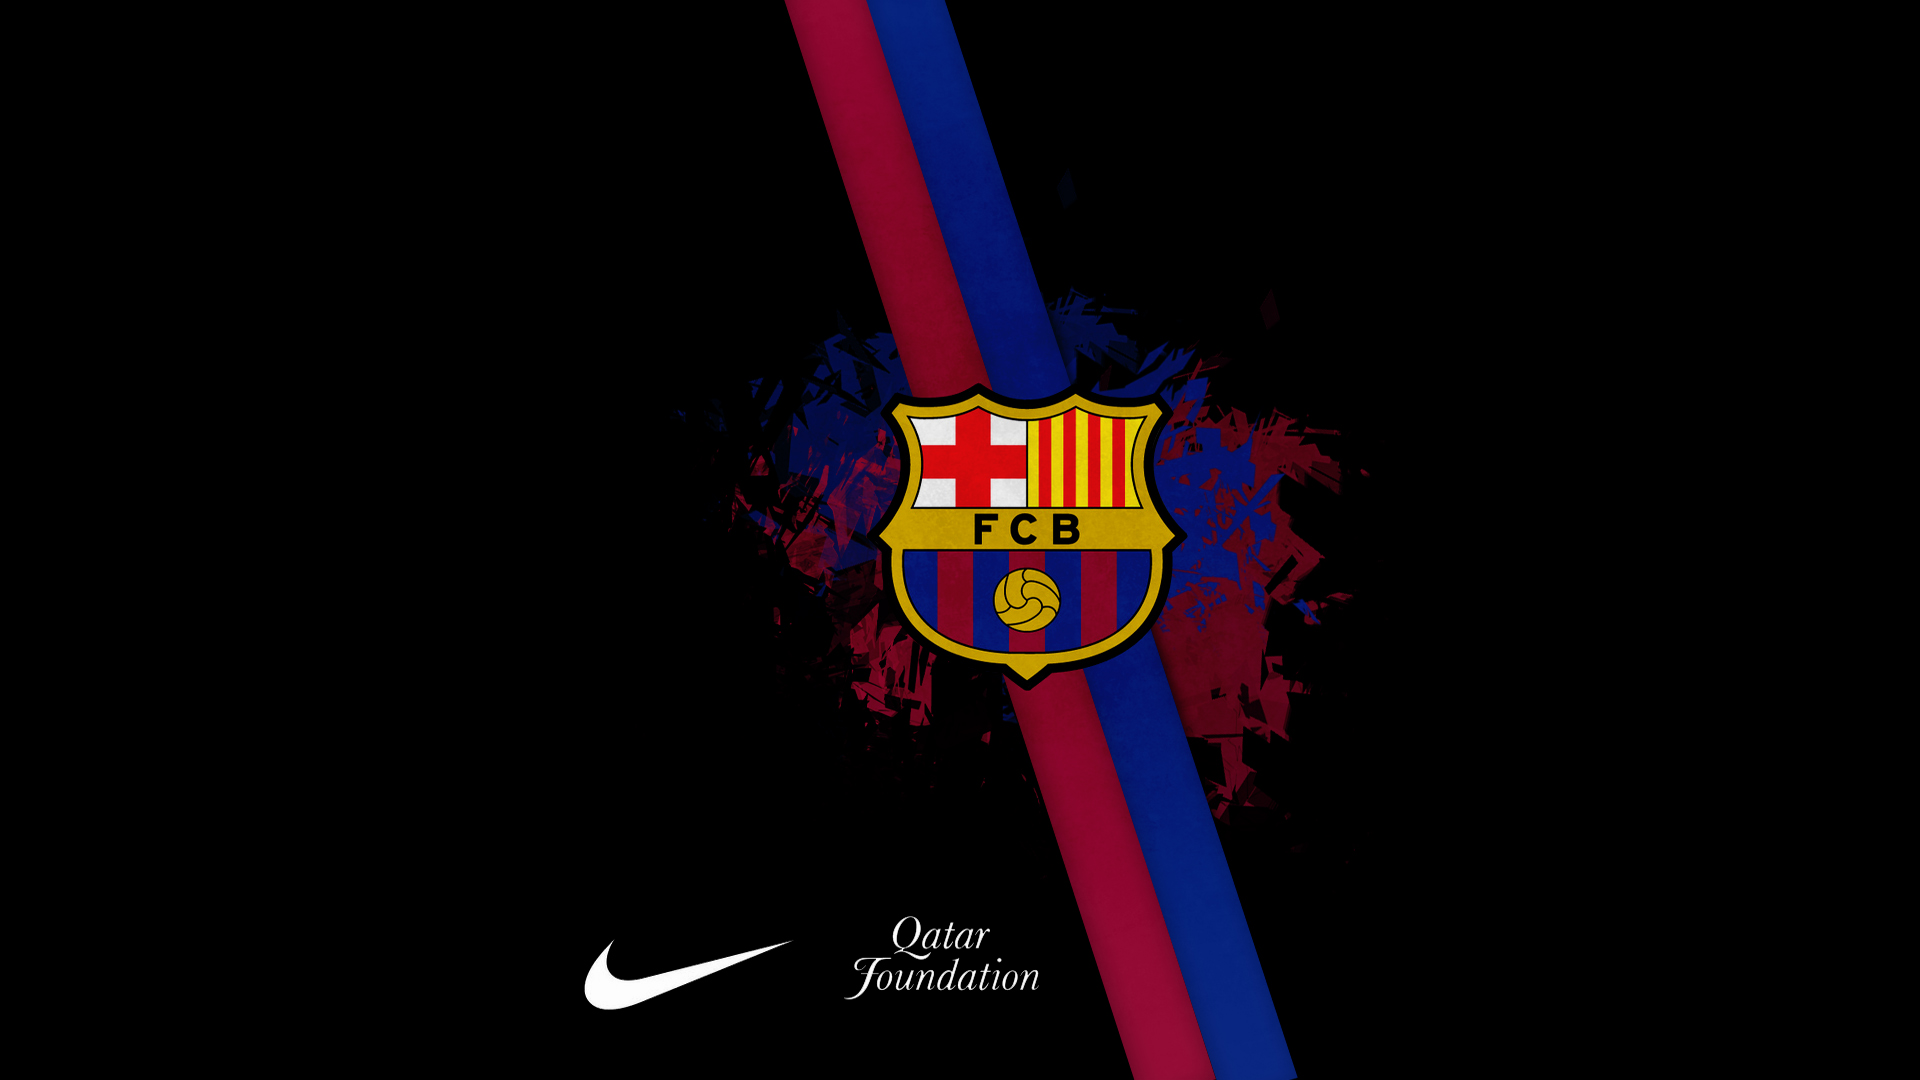 Barcelona FC Wallpaper 1920x1080